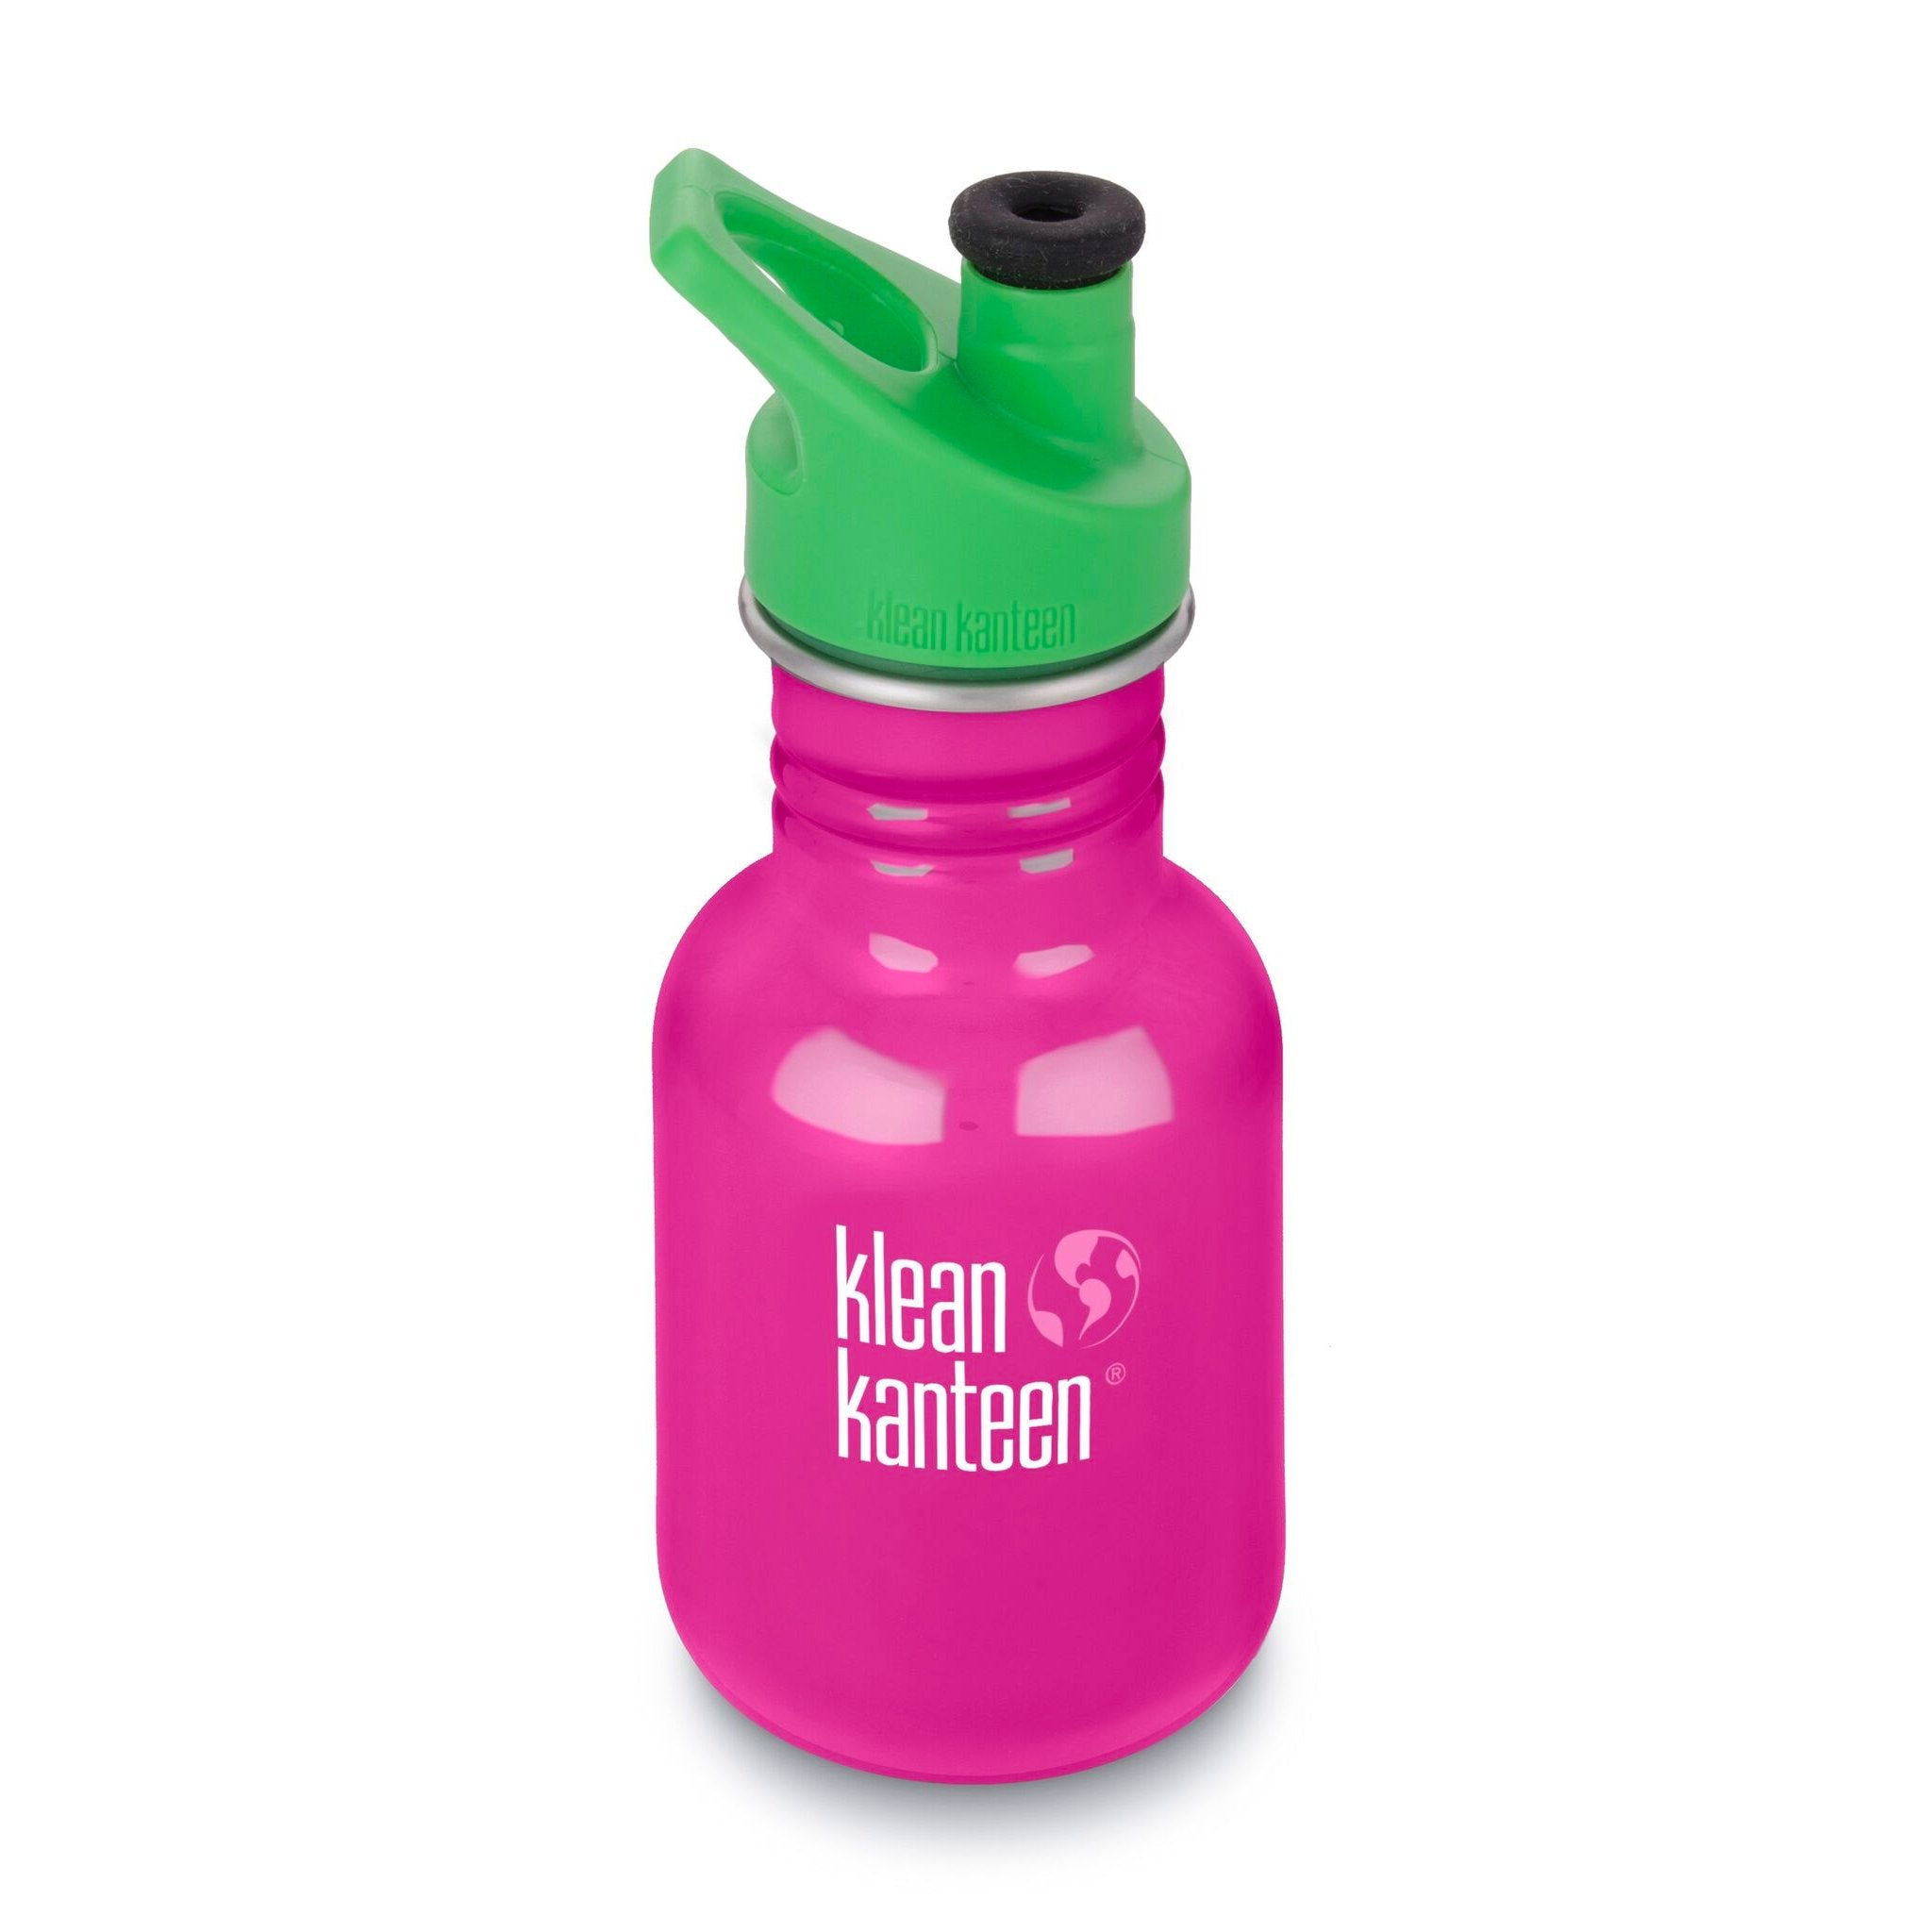 Klean Kanteen Kid Kanteen 355ml 12oz Stainless Steel Bottle Klean Kanteen Sippy Cups Sport / Wild Orchid at Little Earth Nest Eco Shop